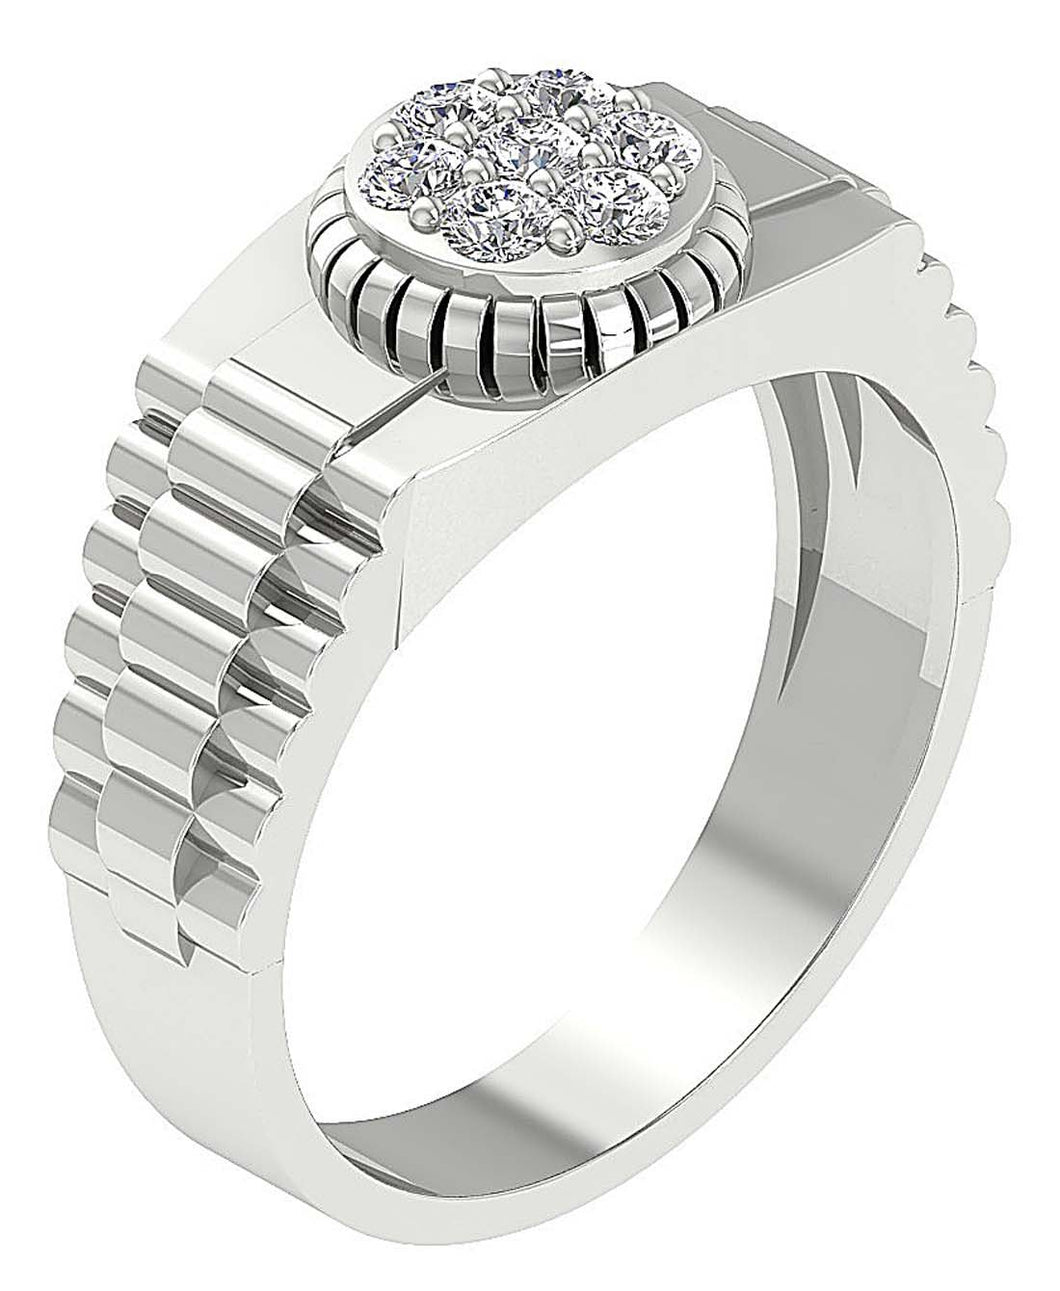 14k Solid Gold SI1/I1 G 0.50Ct Mens Anniversary Ring Natural Diamond Prong Set Width 10.00MM